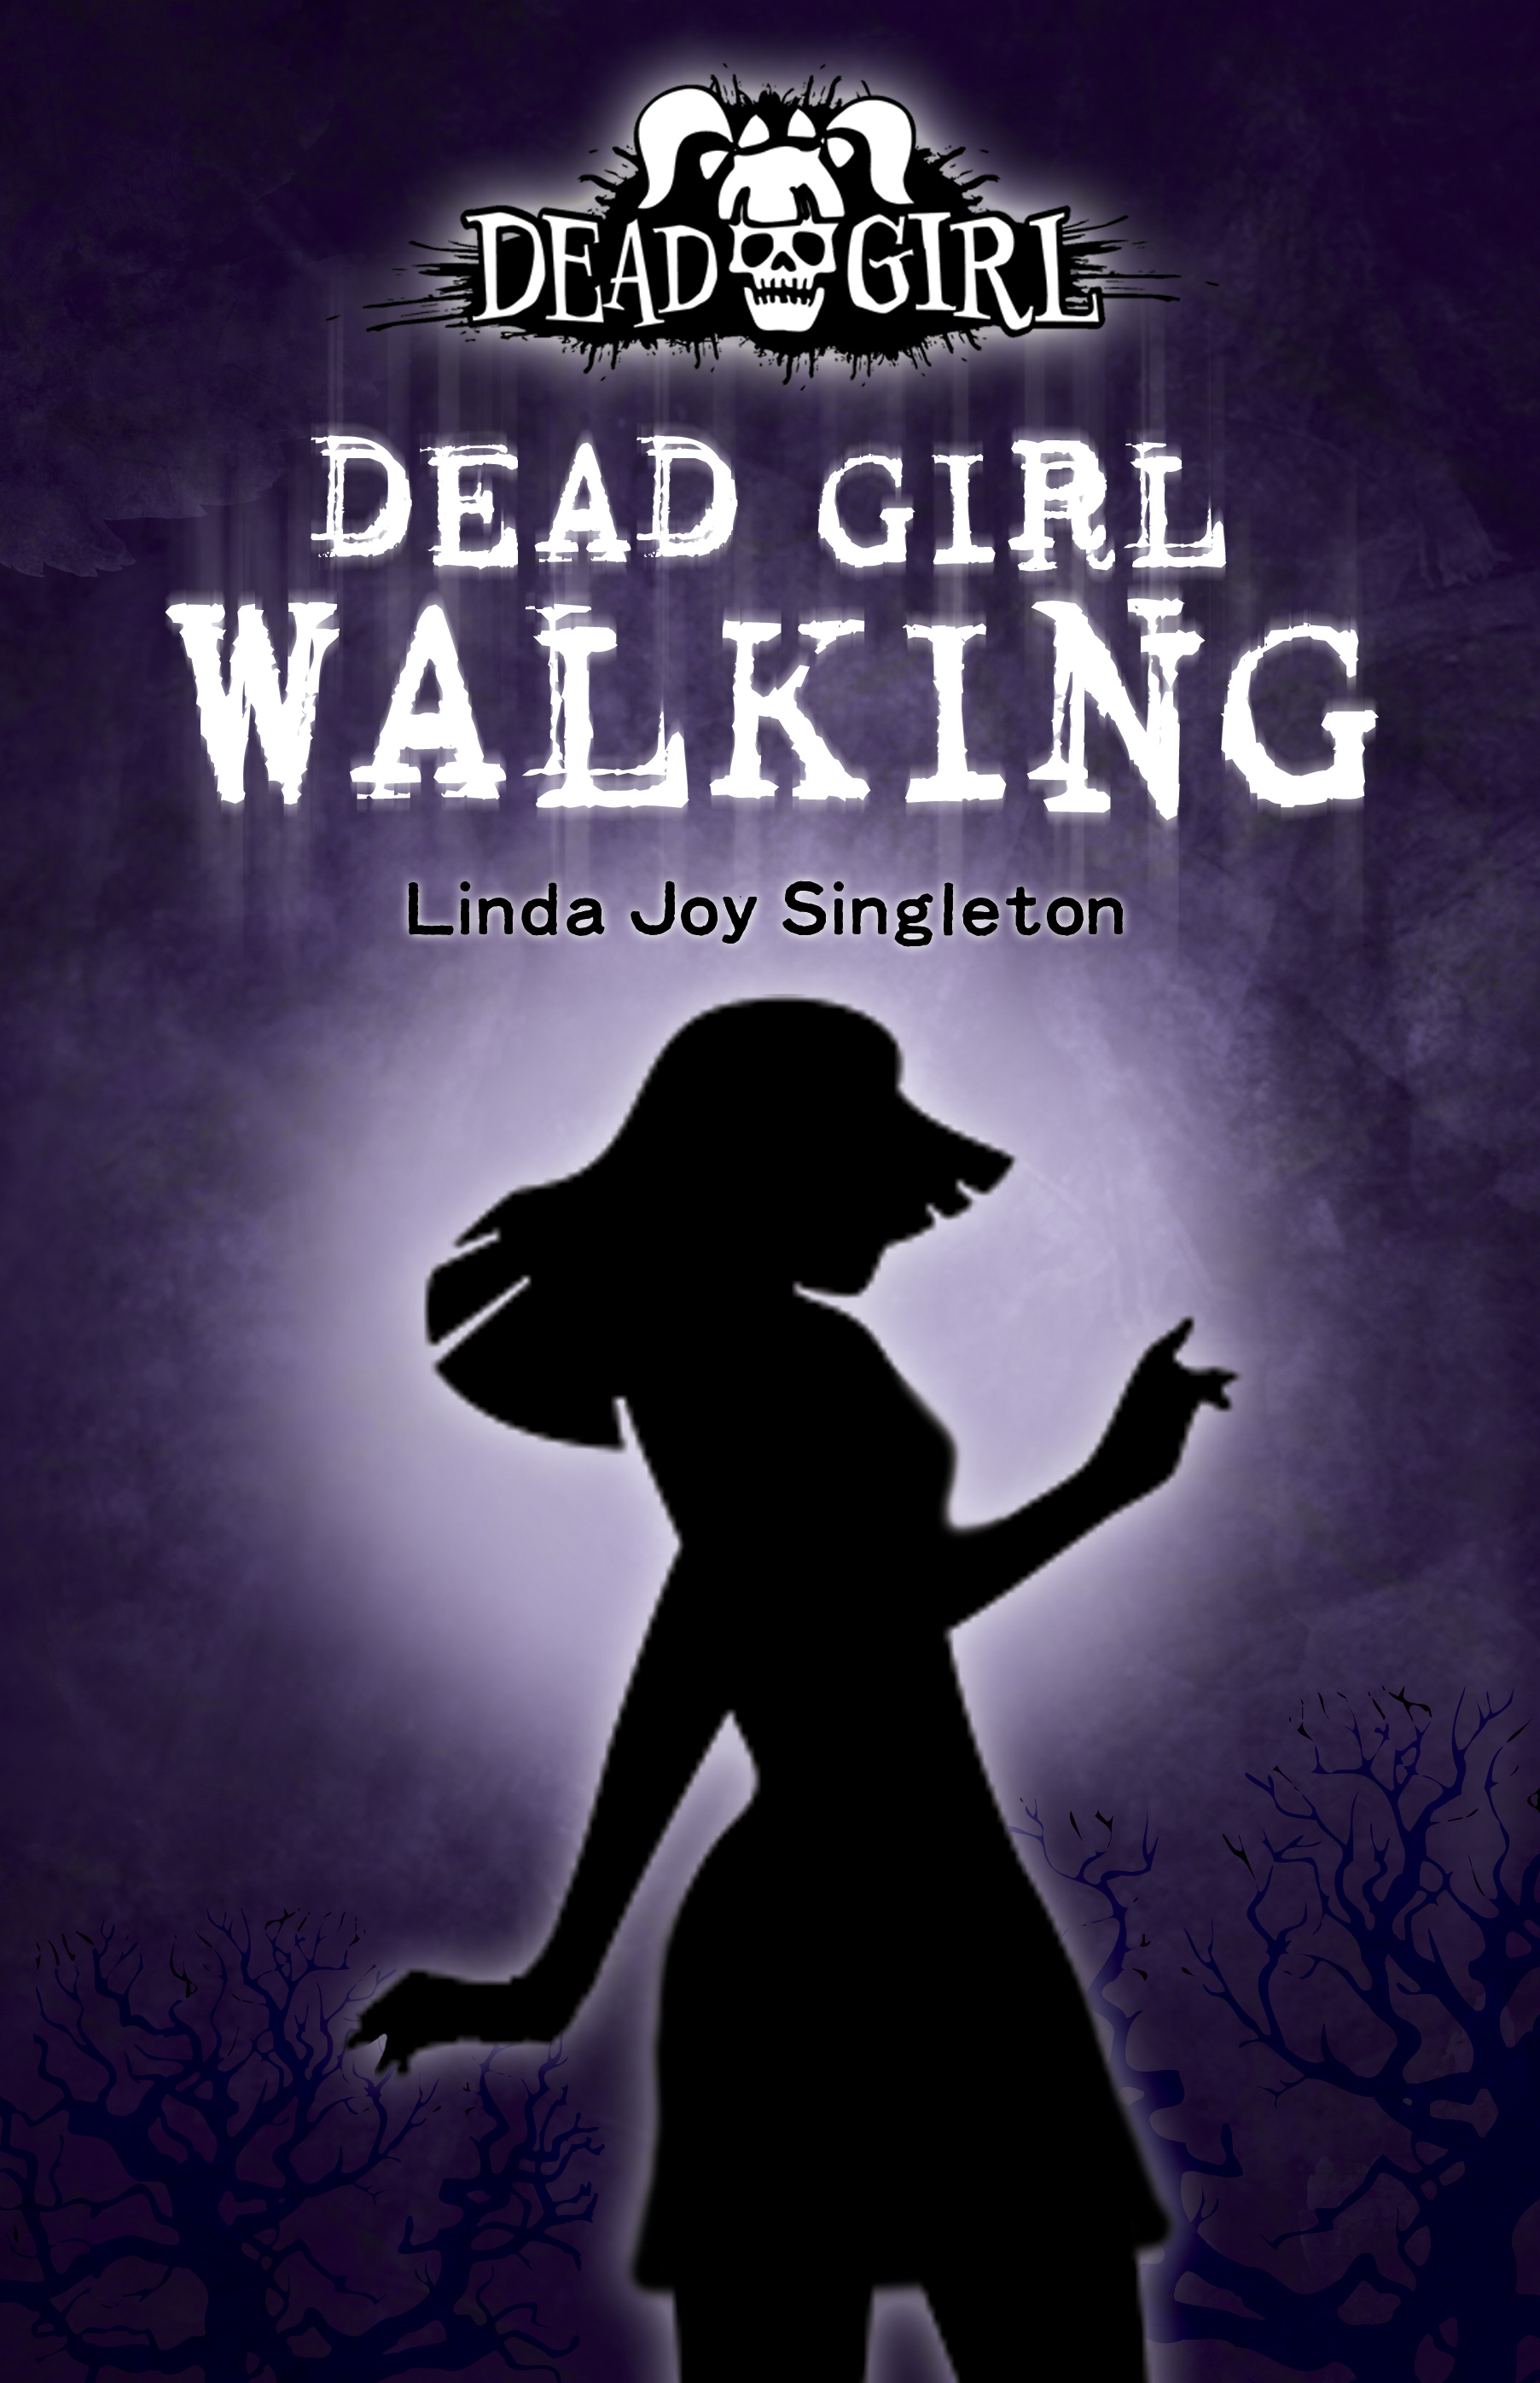 Dead girl walking affiche